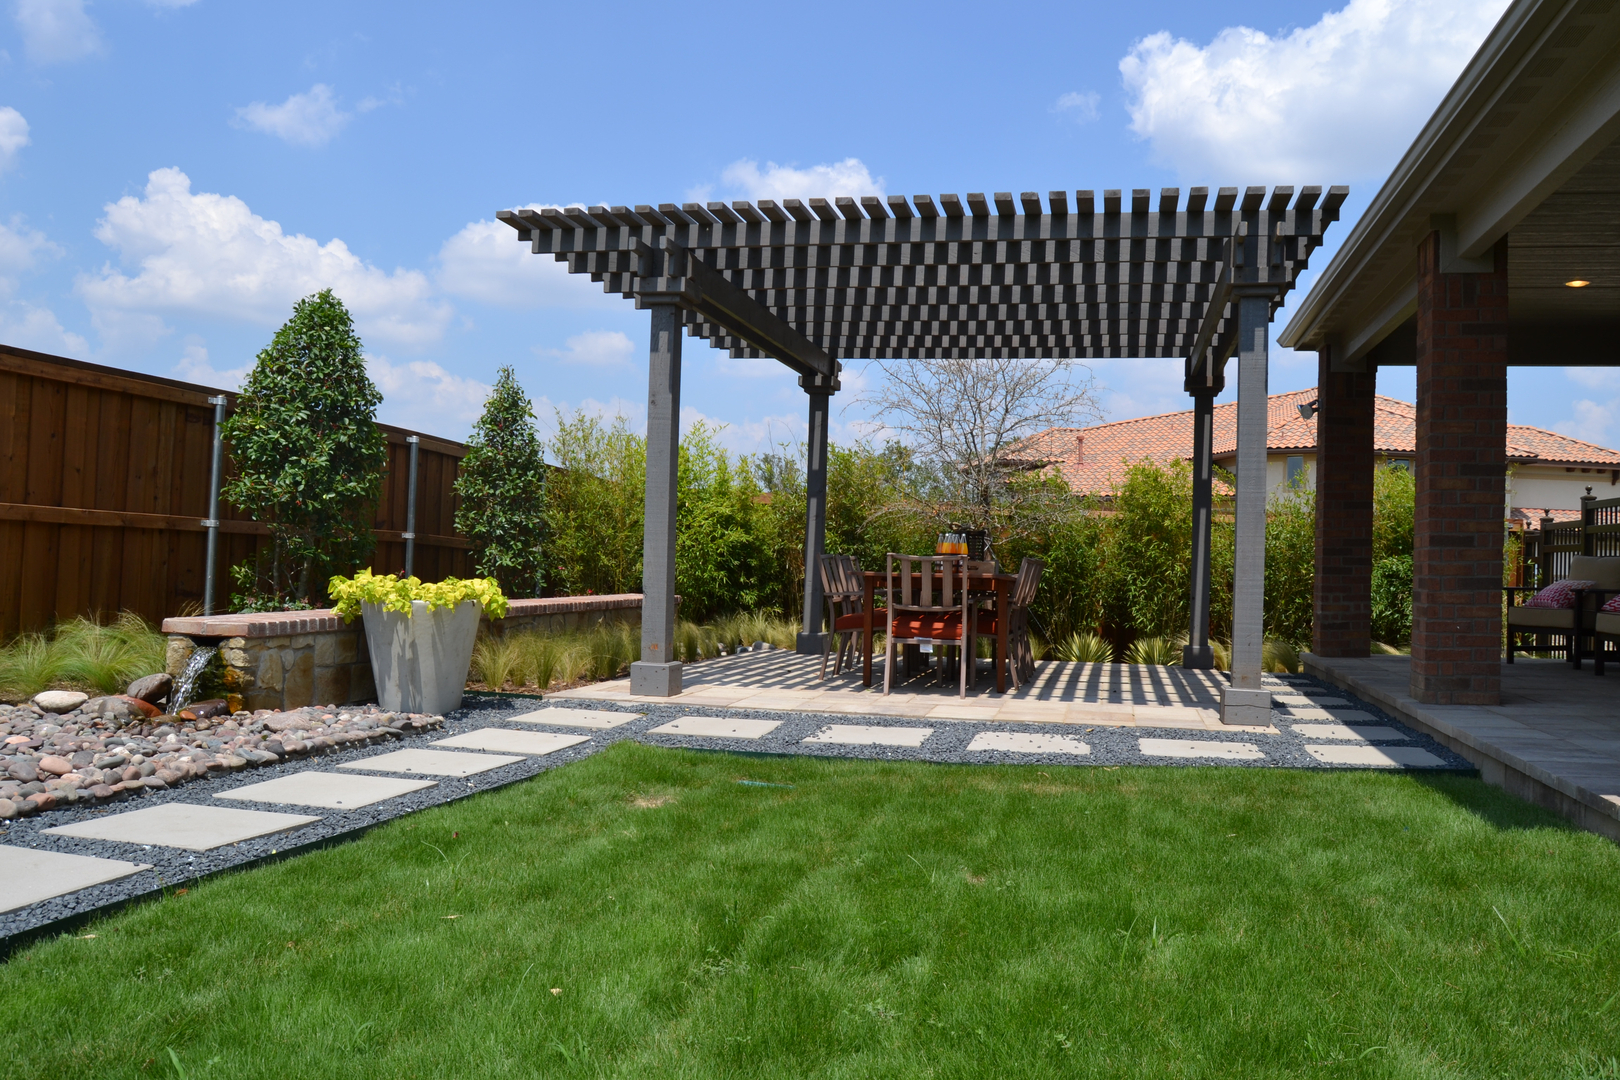 Garden Design Dallas distinctive dallas garden designs that enhance your home Garden Design Landscaping In Dallas